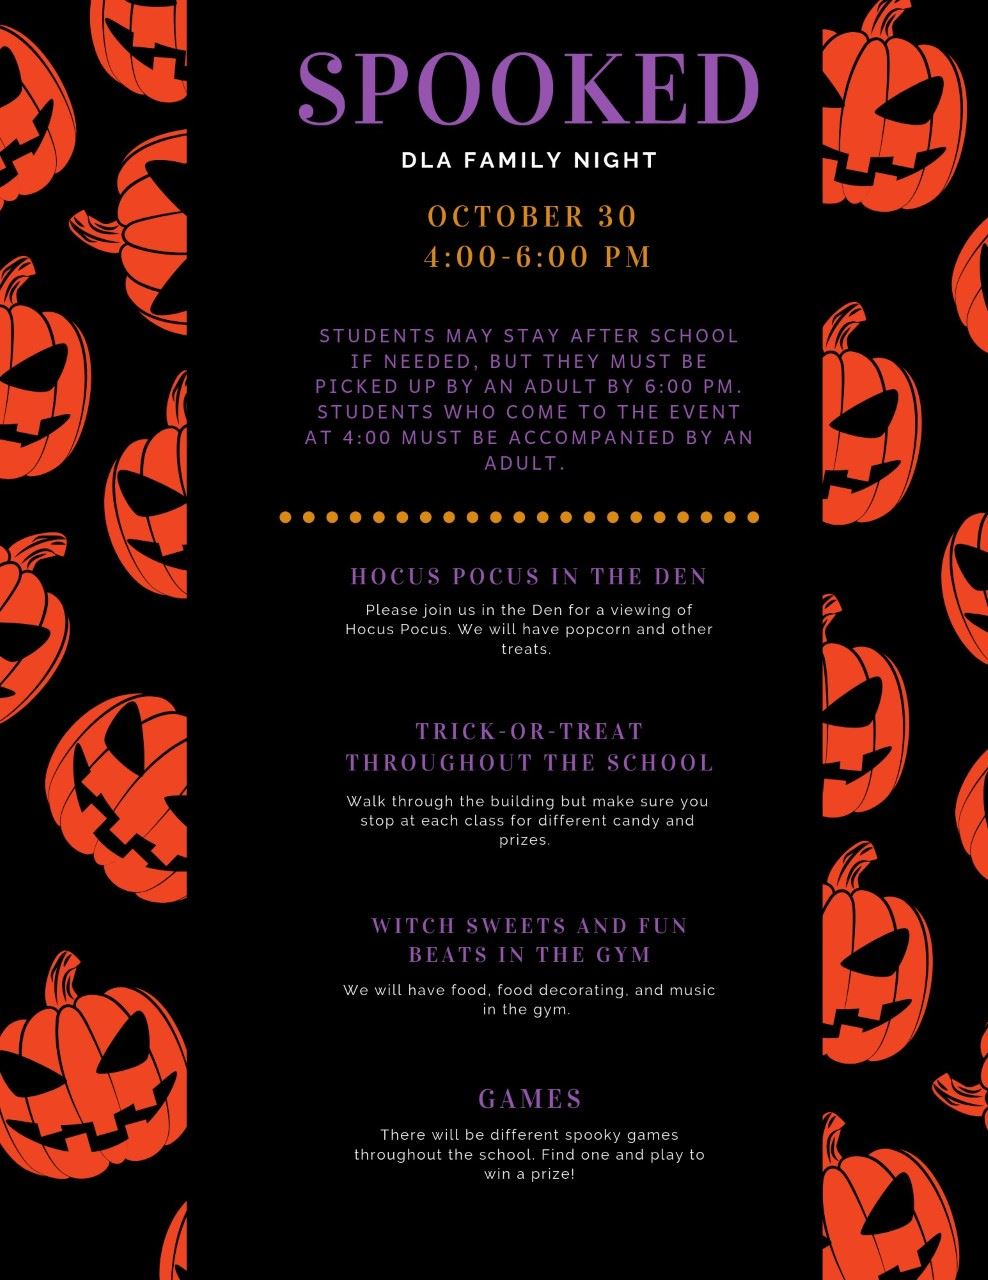 Spooked Family Night Flyer